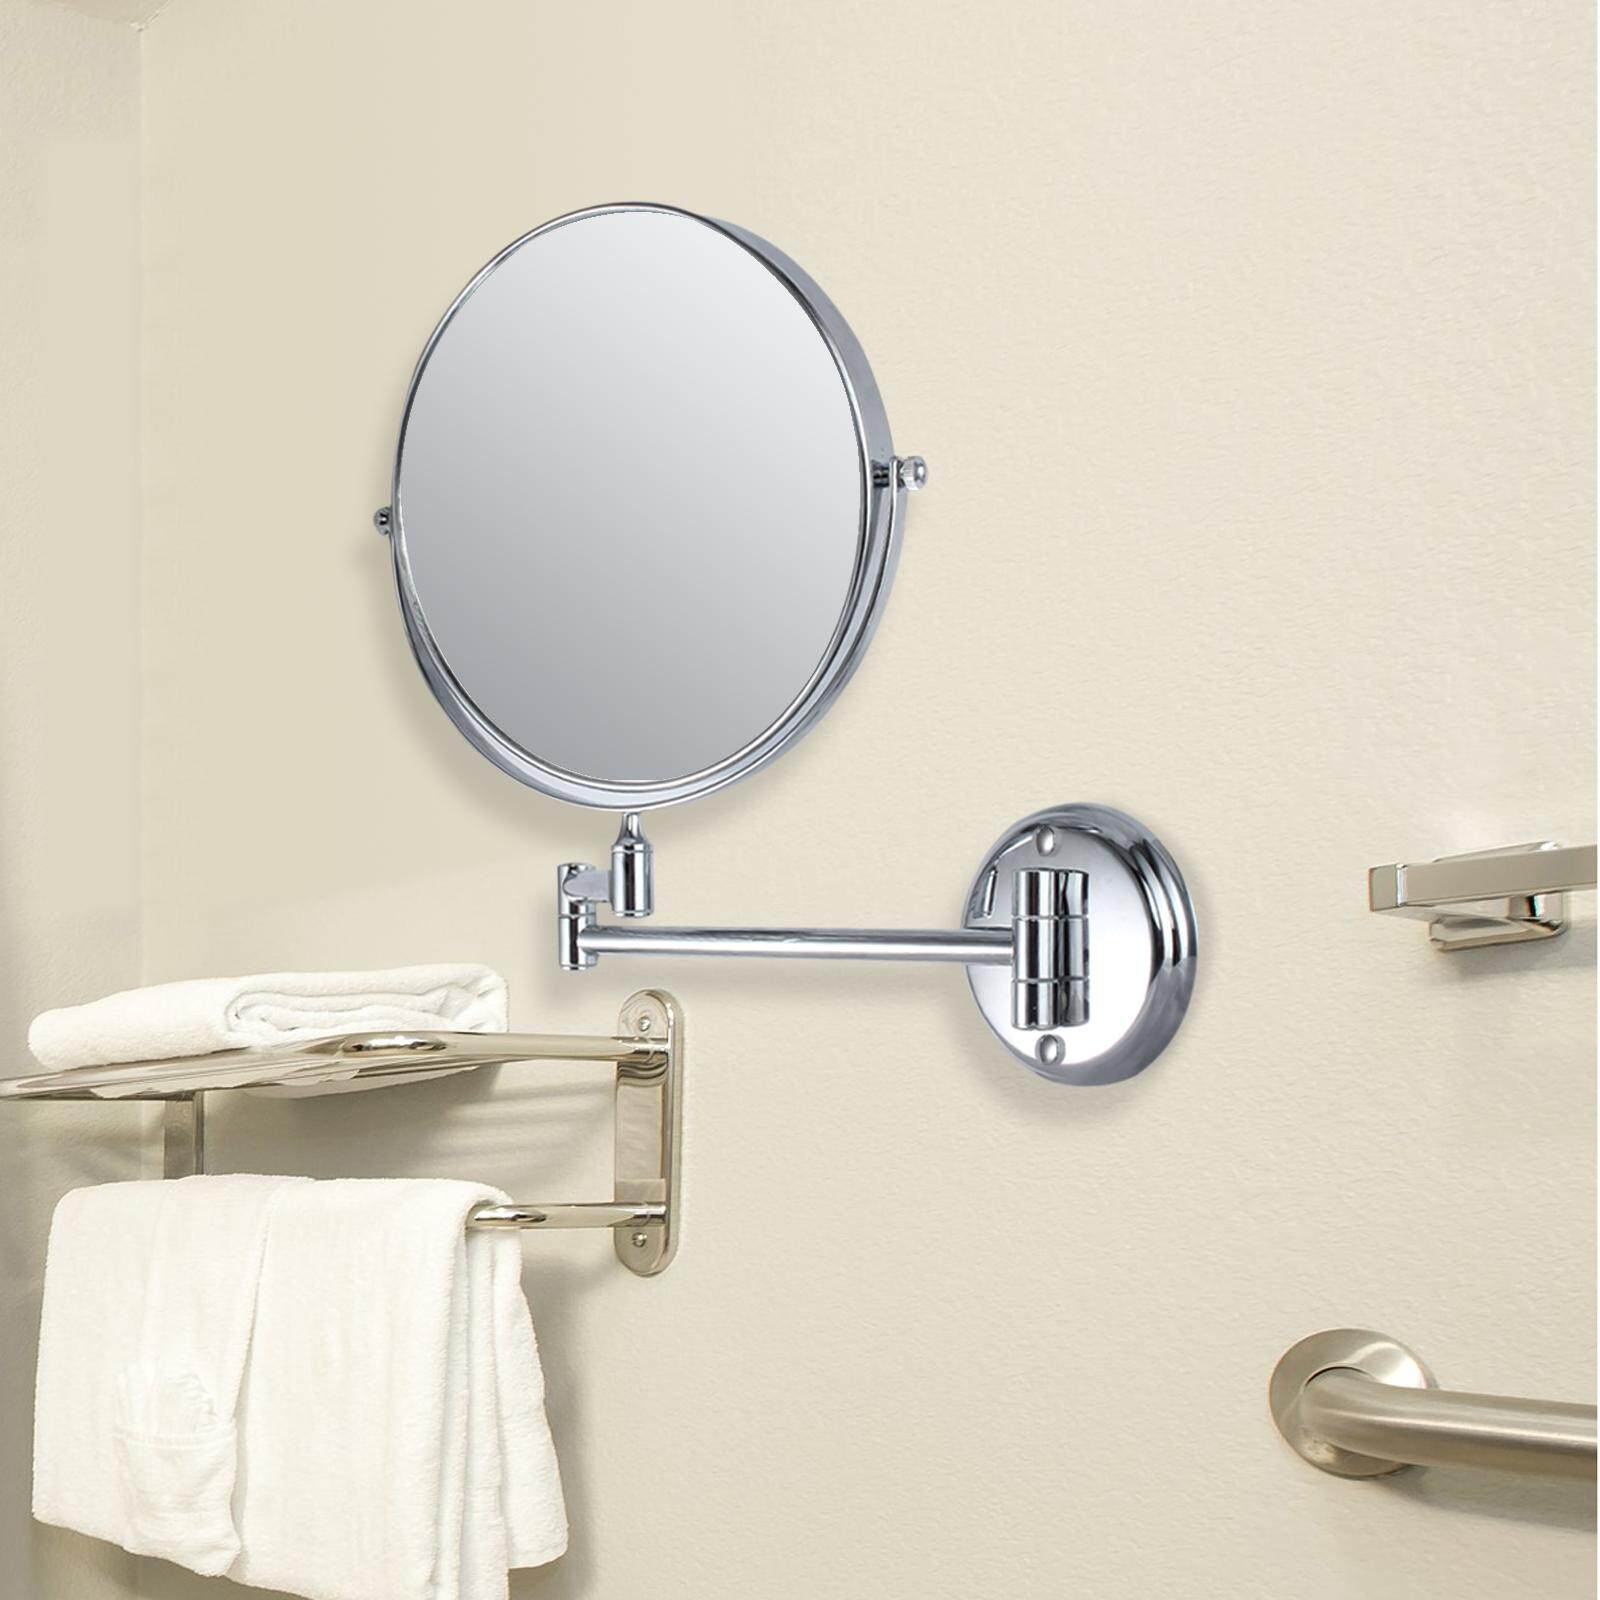 10X 8'' Magnification Two-Sided Swivel Wall Mount Mirror Polished Chrome Bathroom Mirrors